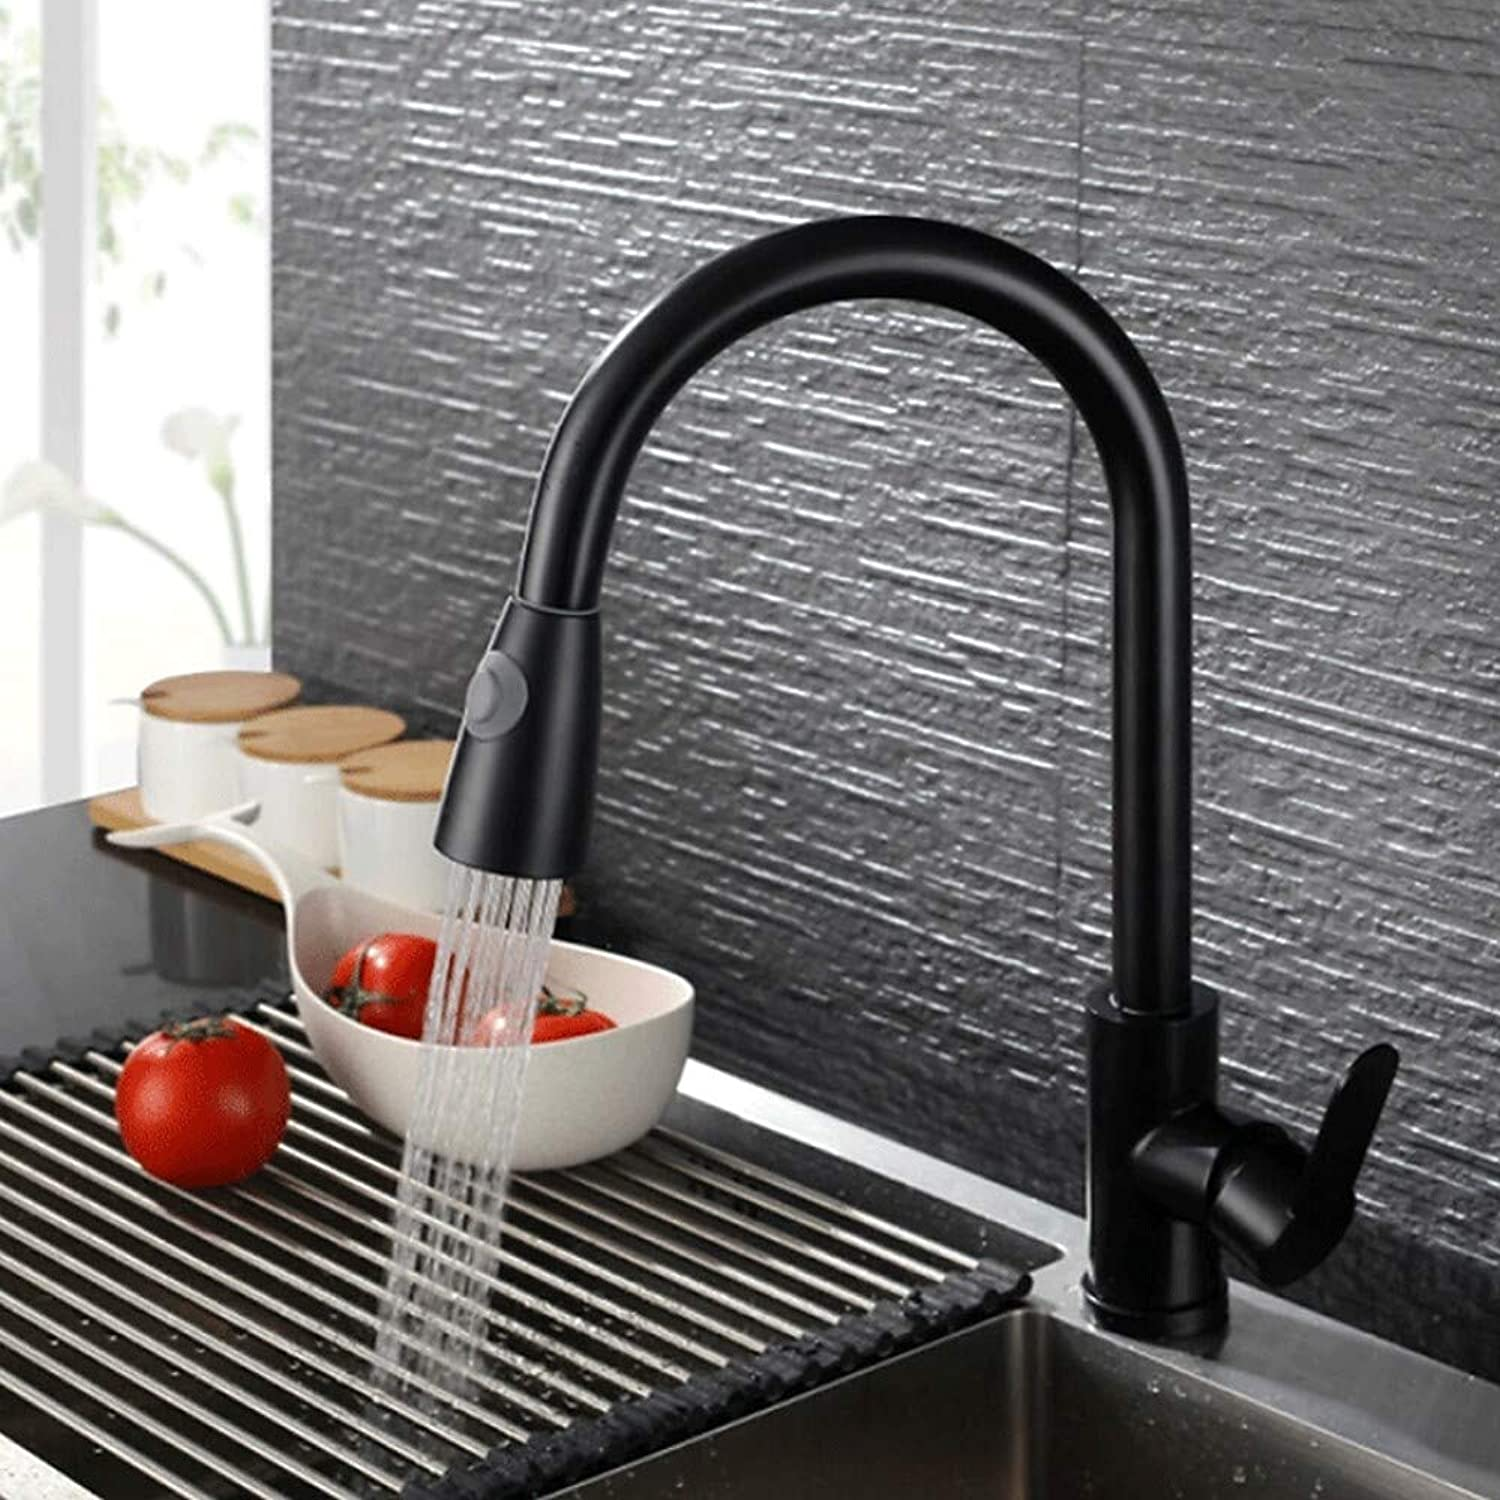 ZGL-Kitchen faucet - Single Handle One Hole Pull-Out   -Pull-Down Contemporary Kitchen Taps Brushed Stainless Steel